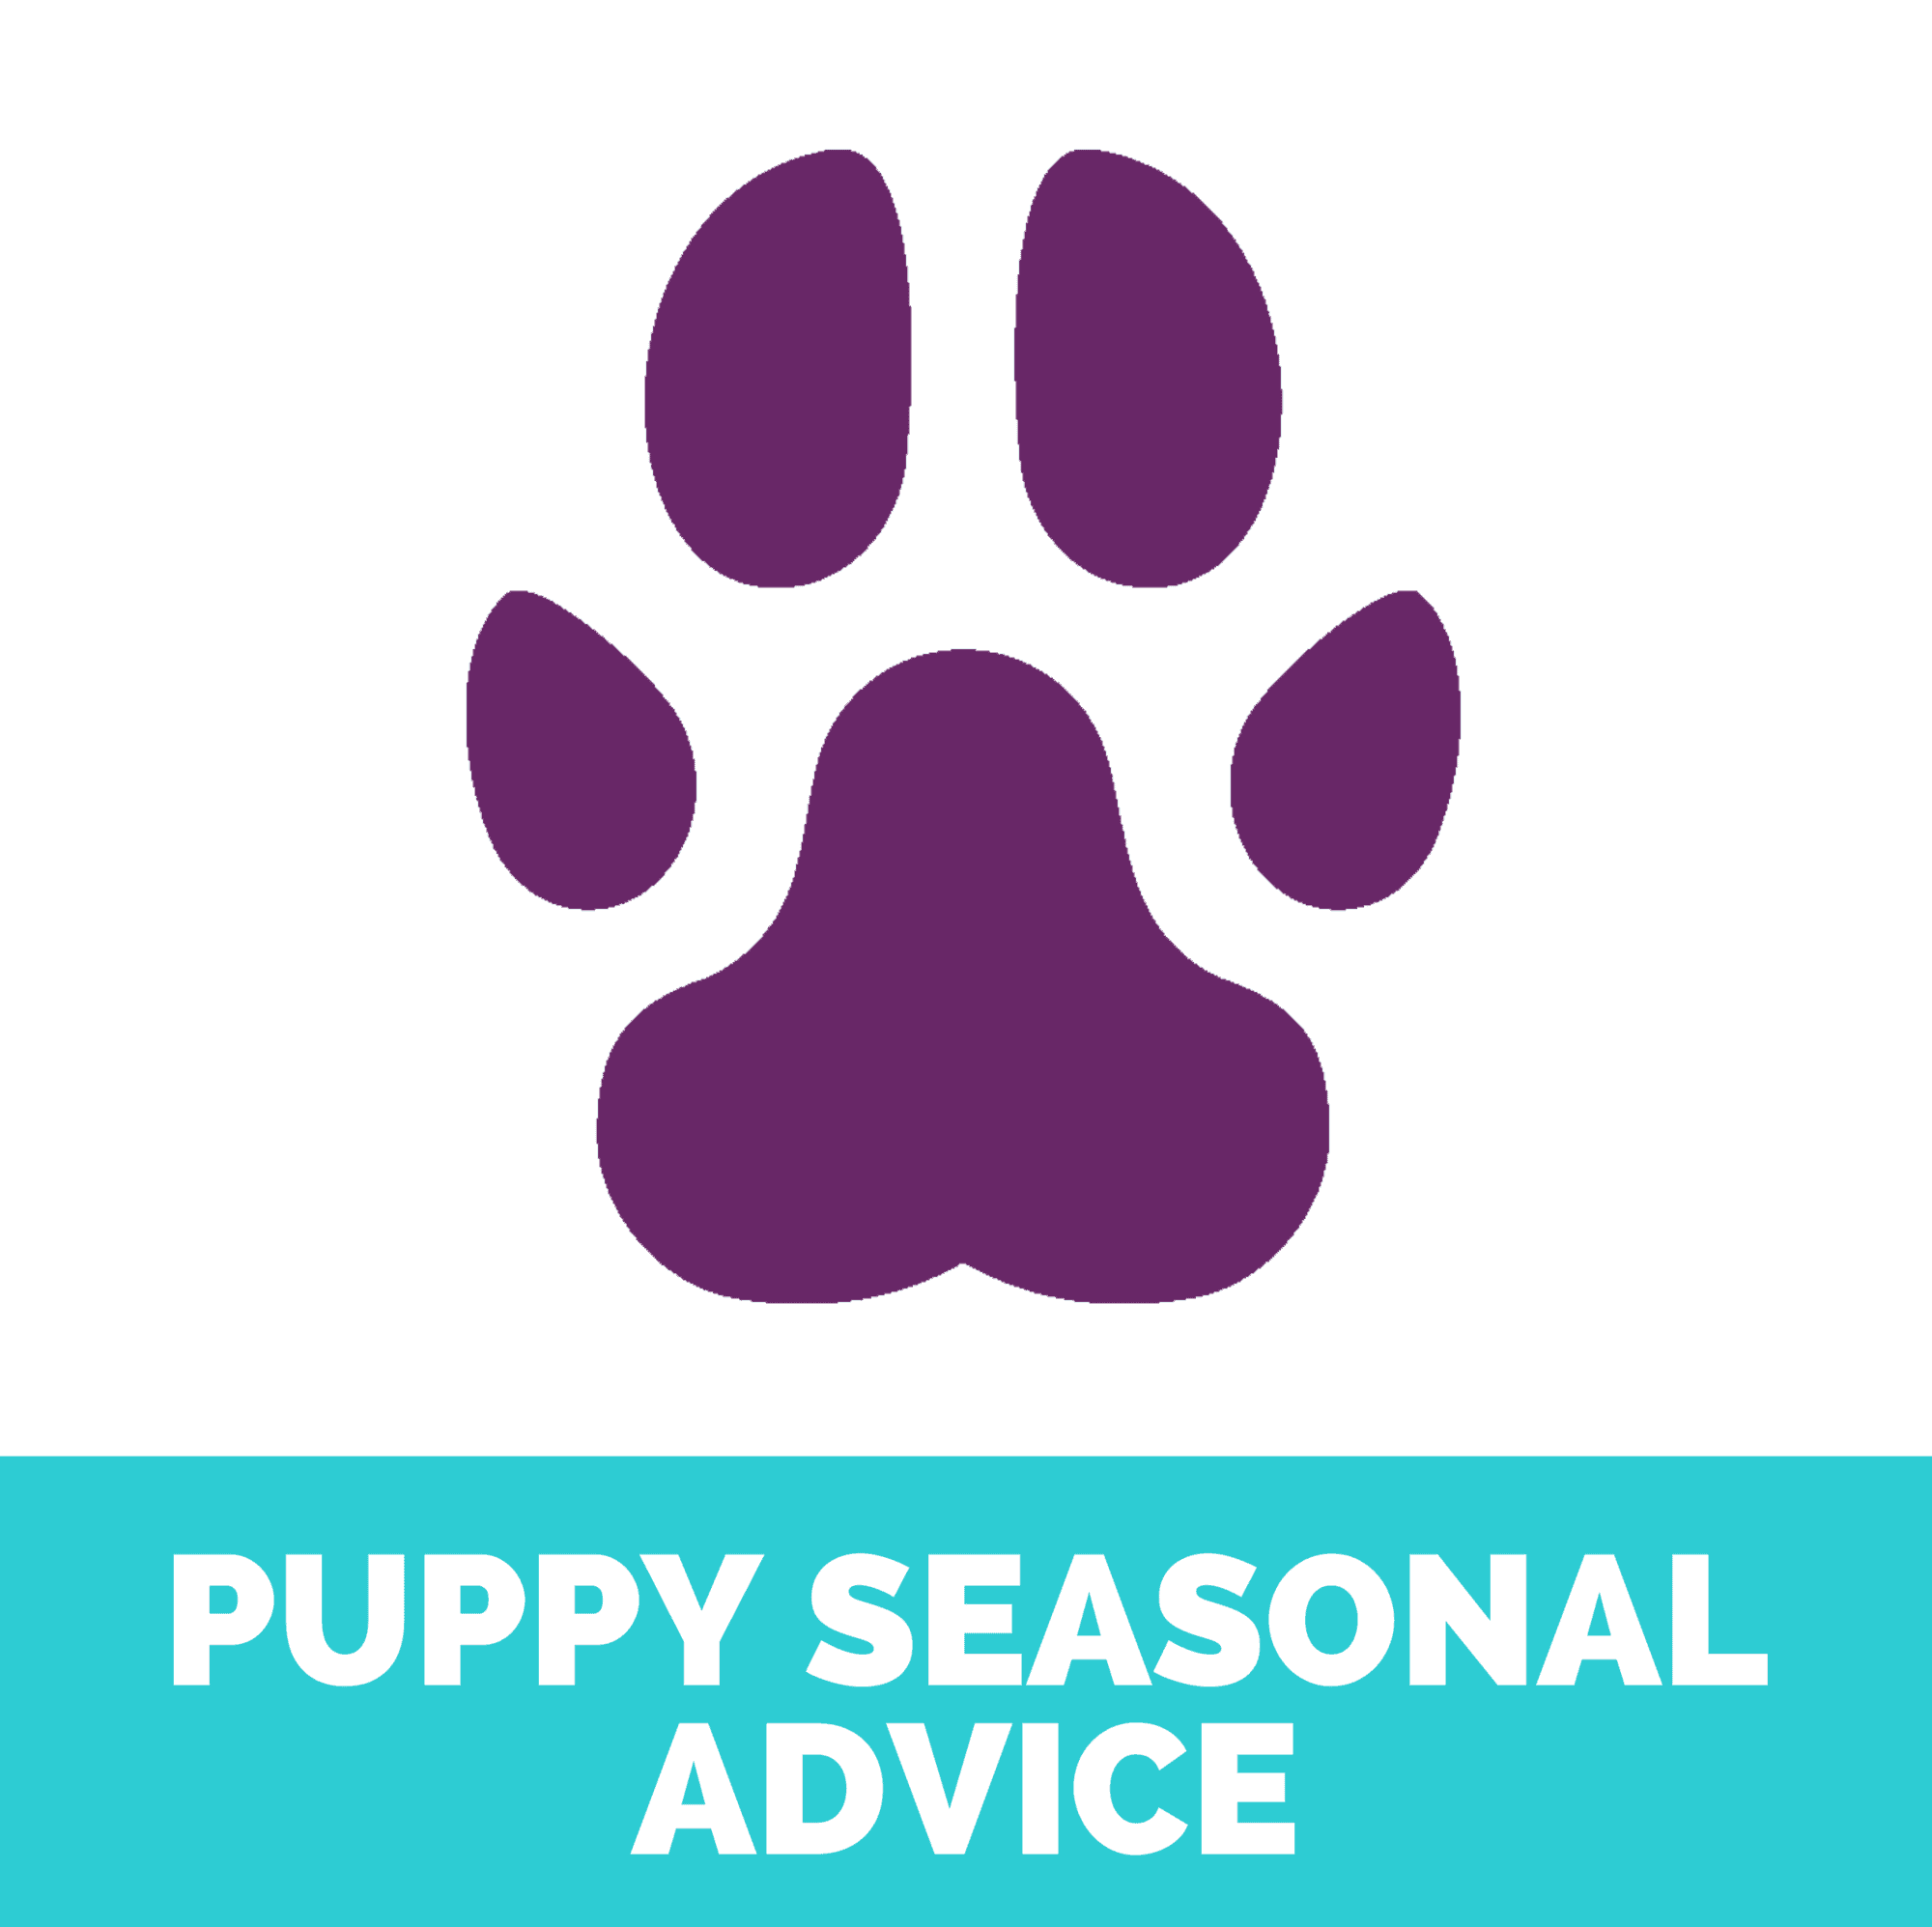 Puppy seasonal advice